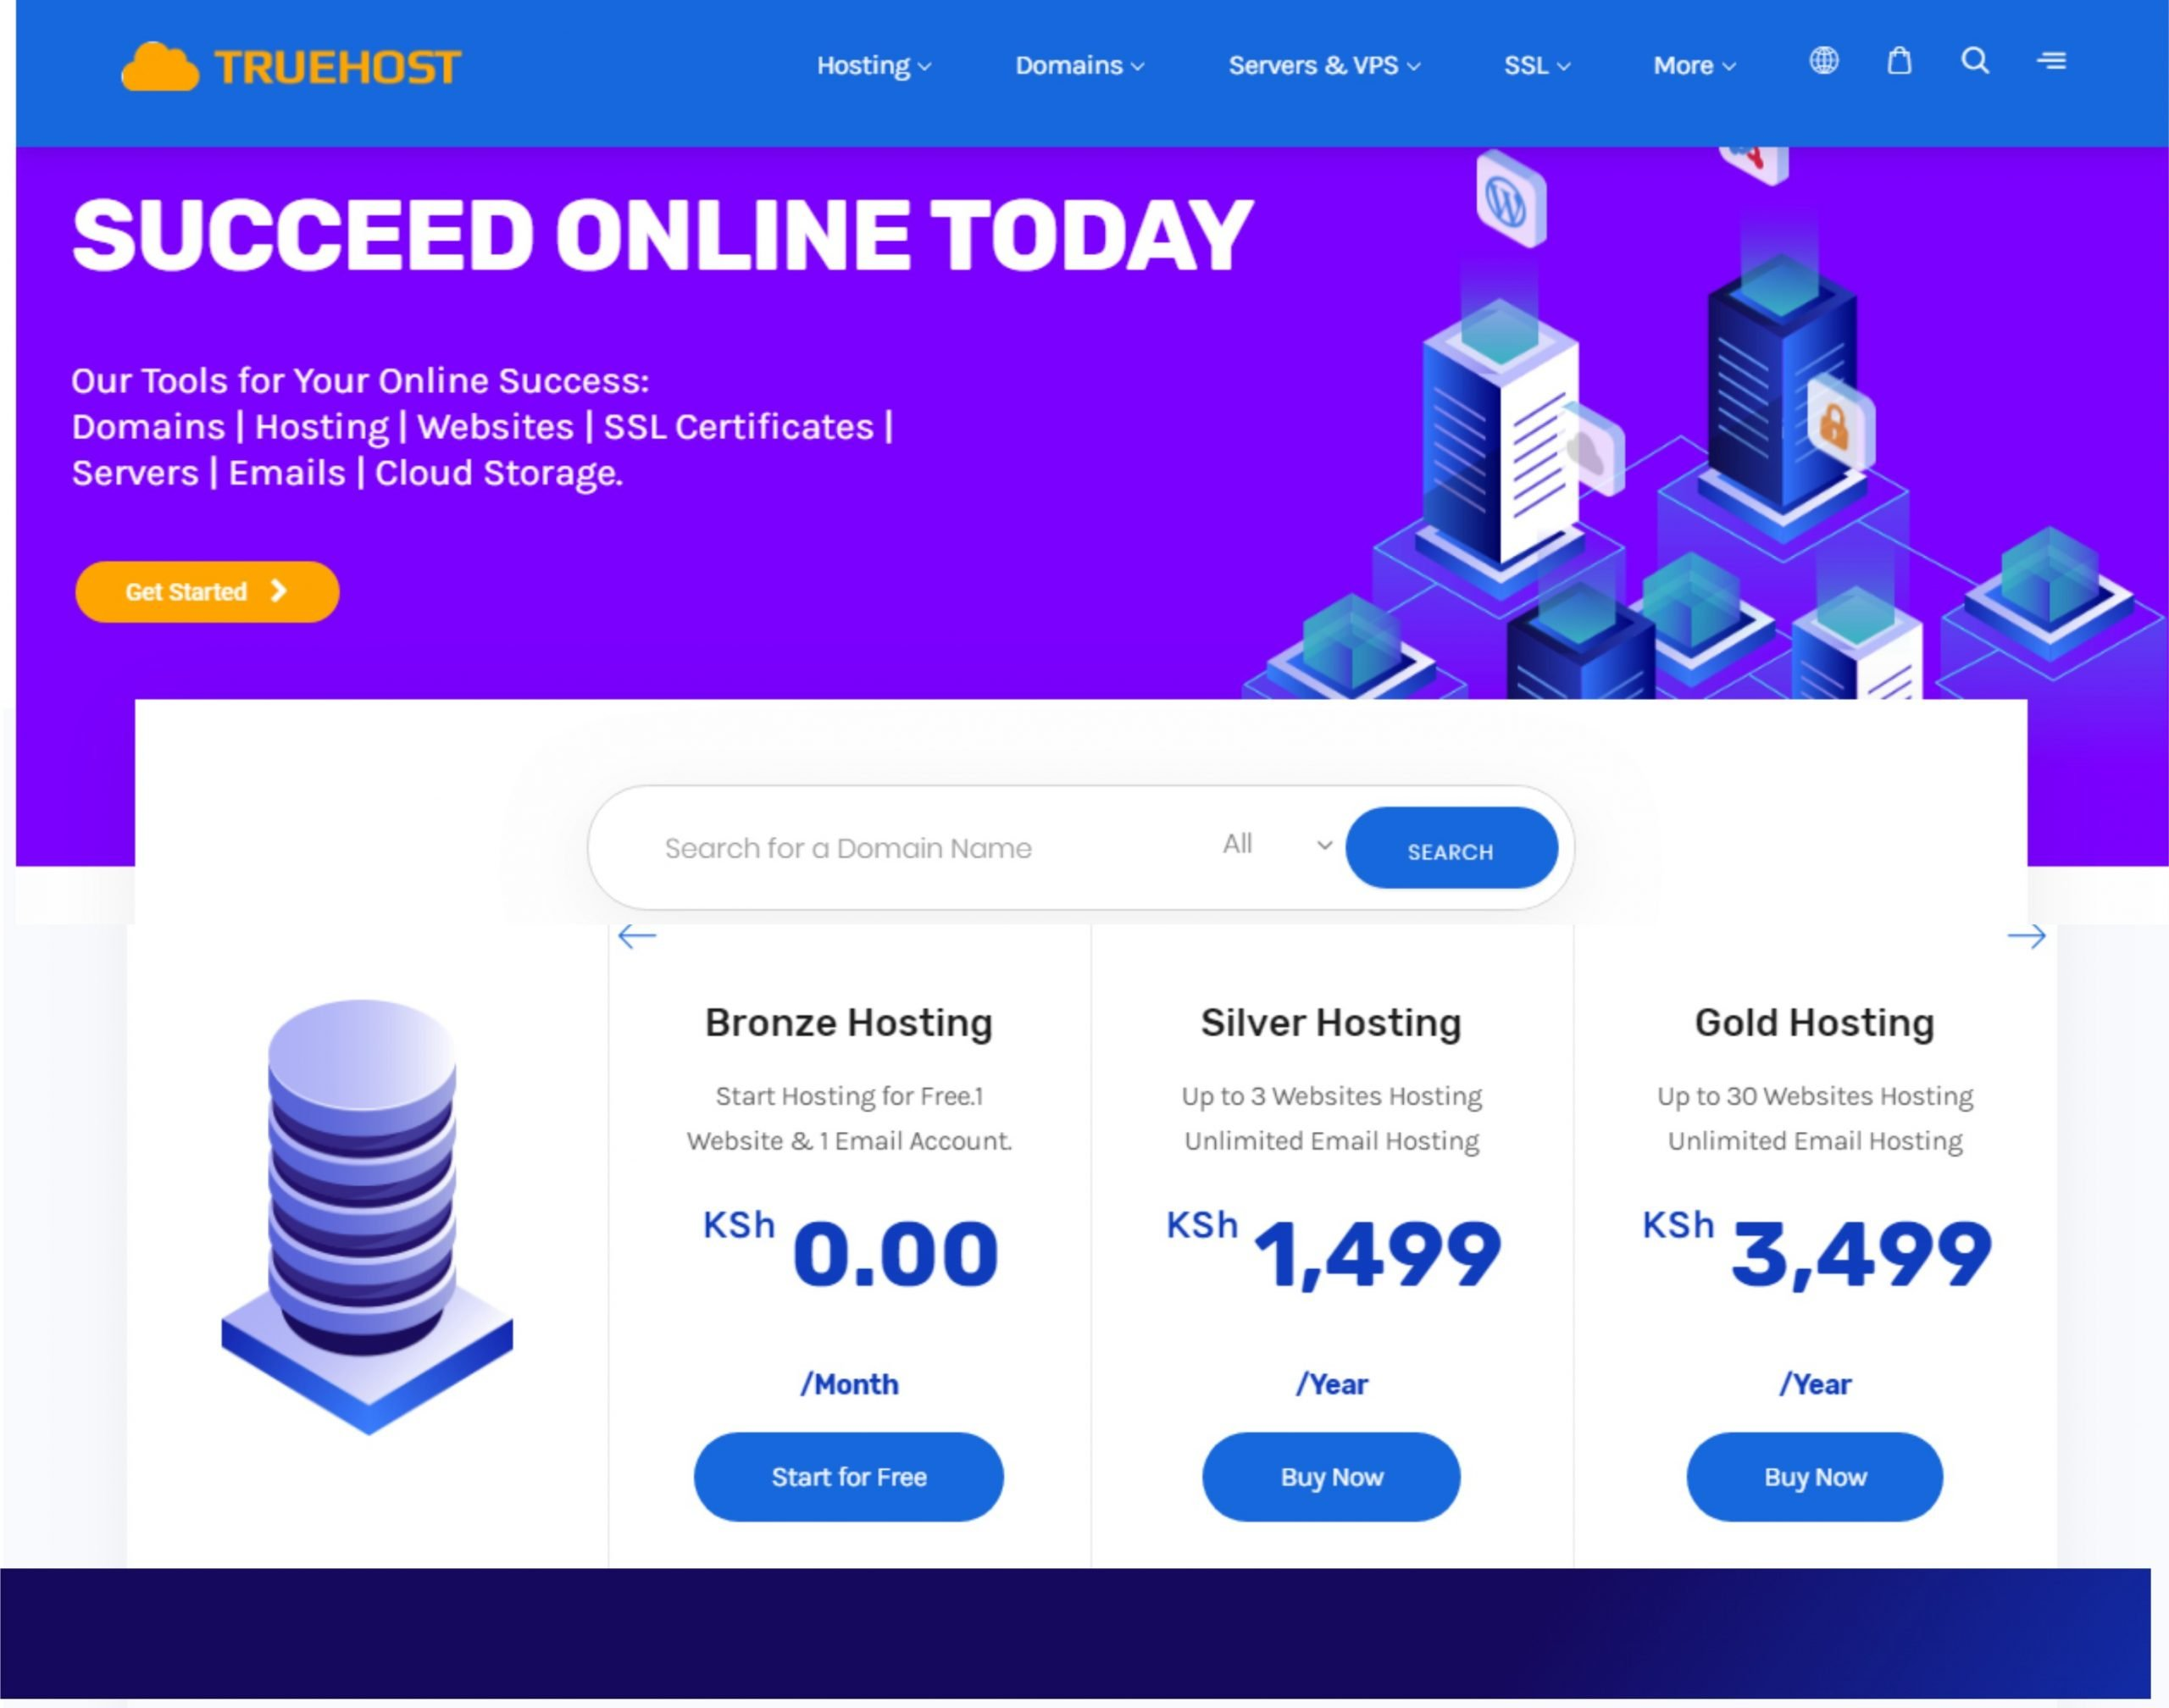 Truehost-Cloud-Hosting